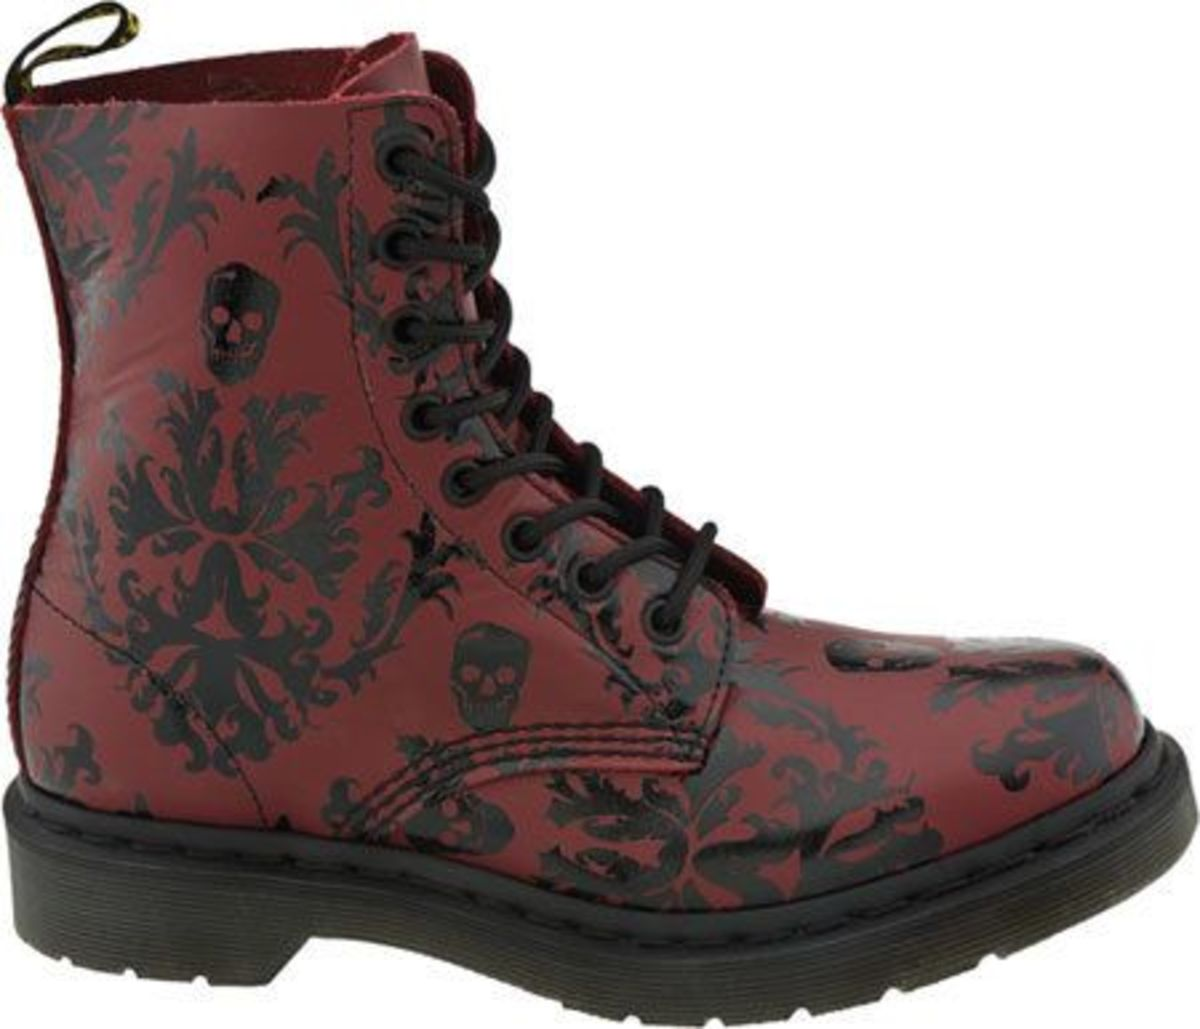 Who says steel toed boots can't be classy? This one has skulls on it!